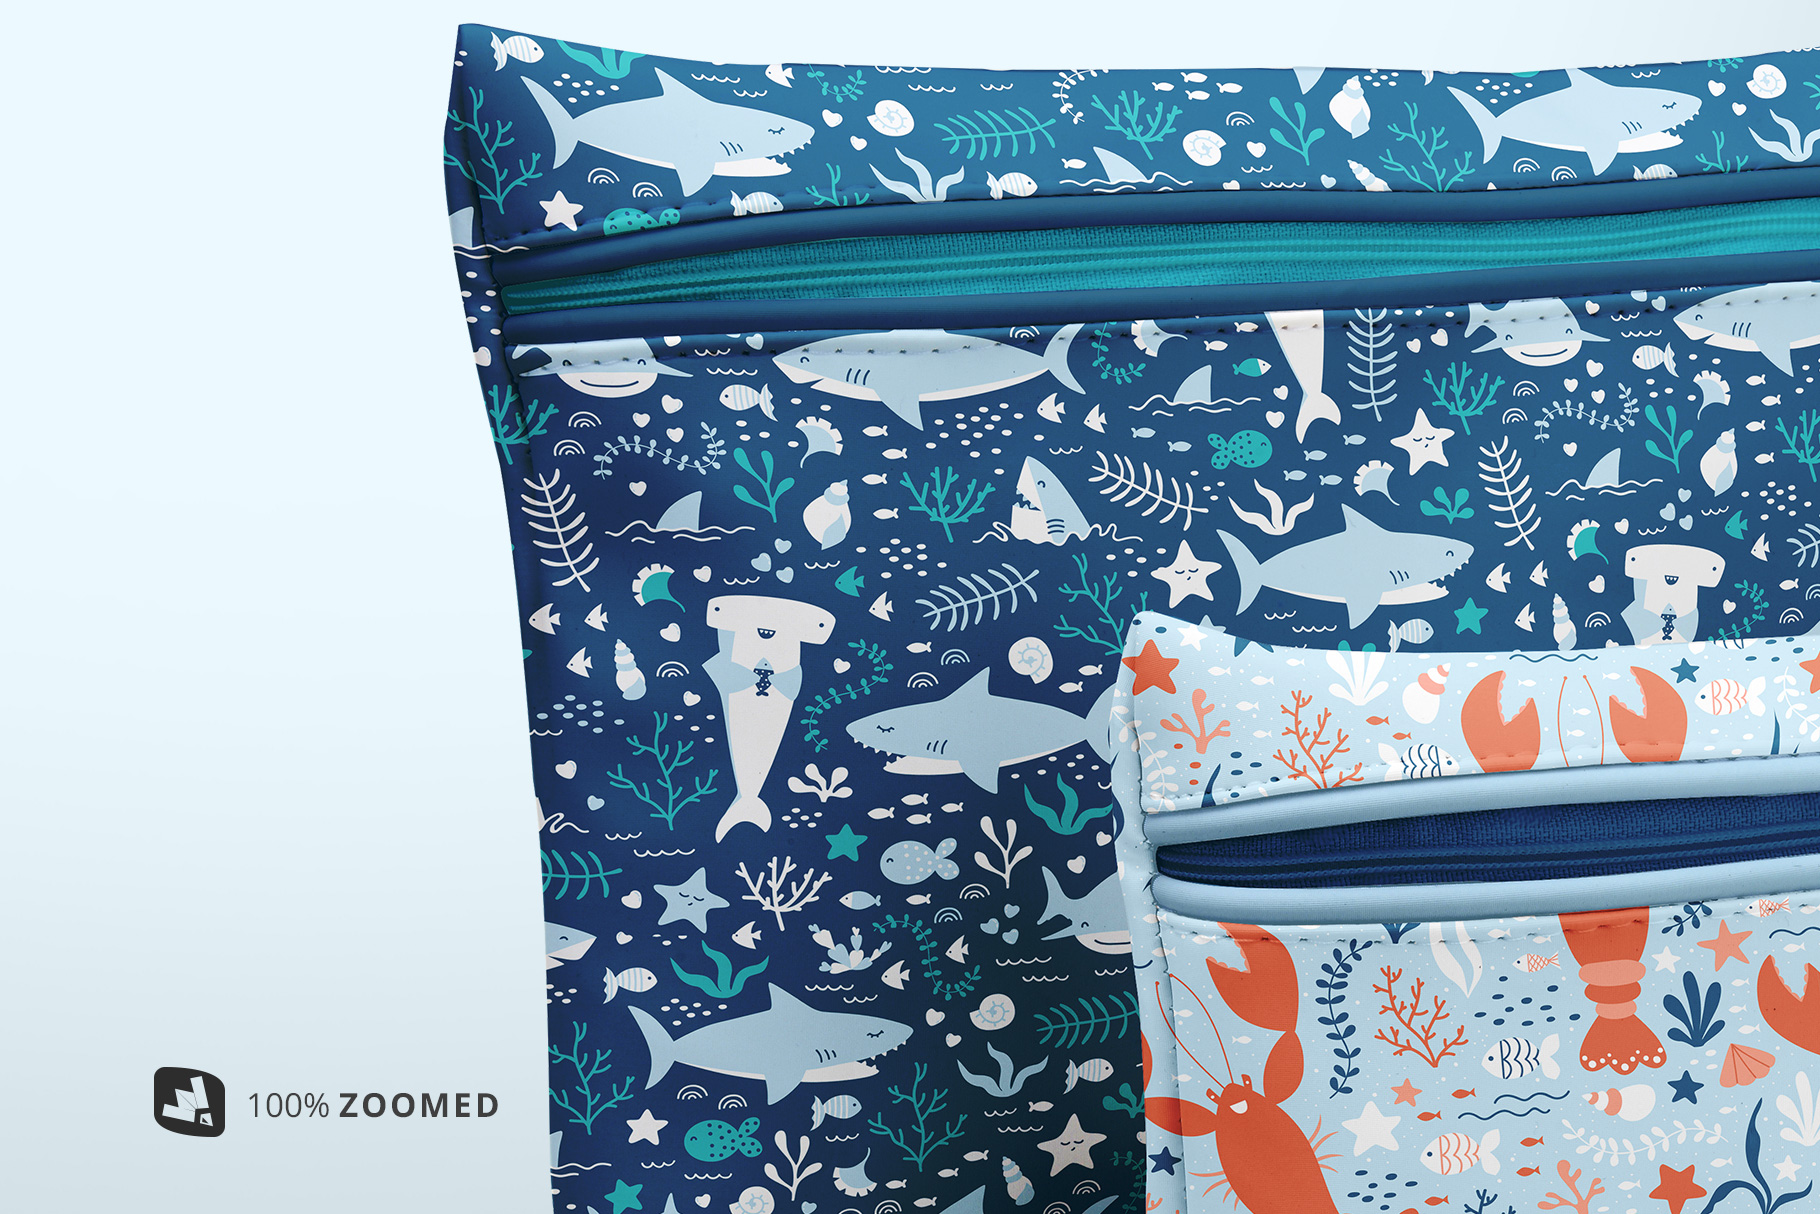 zoomed in image of the set of travel bathroom pouches mockup